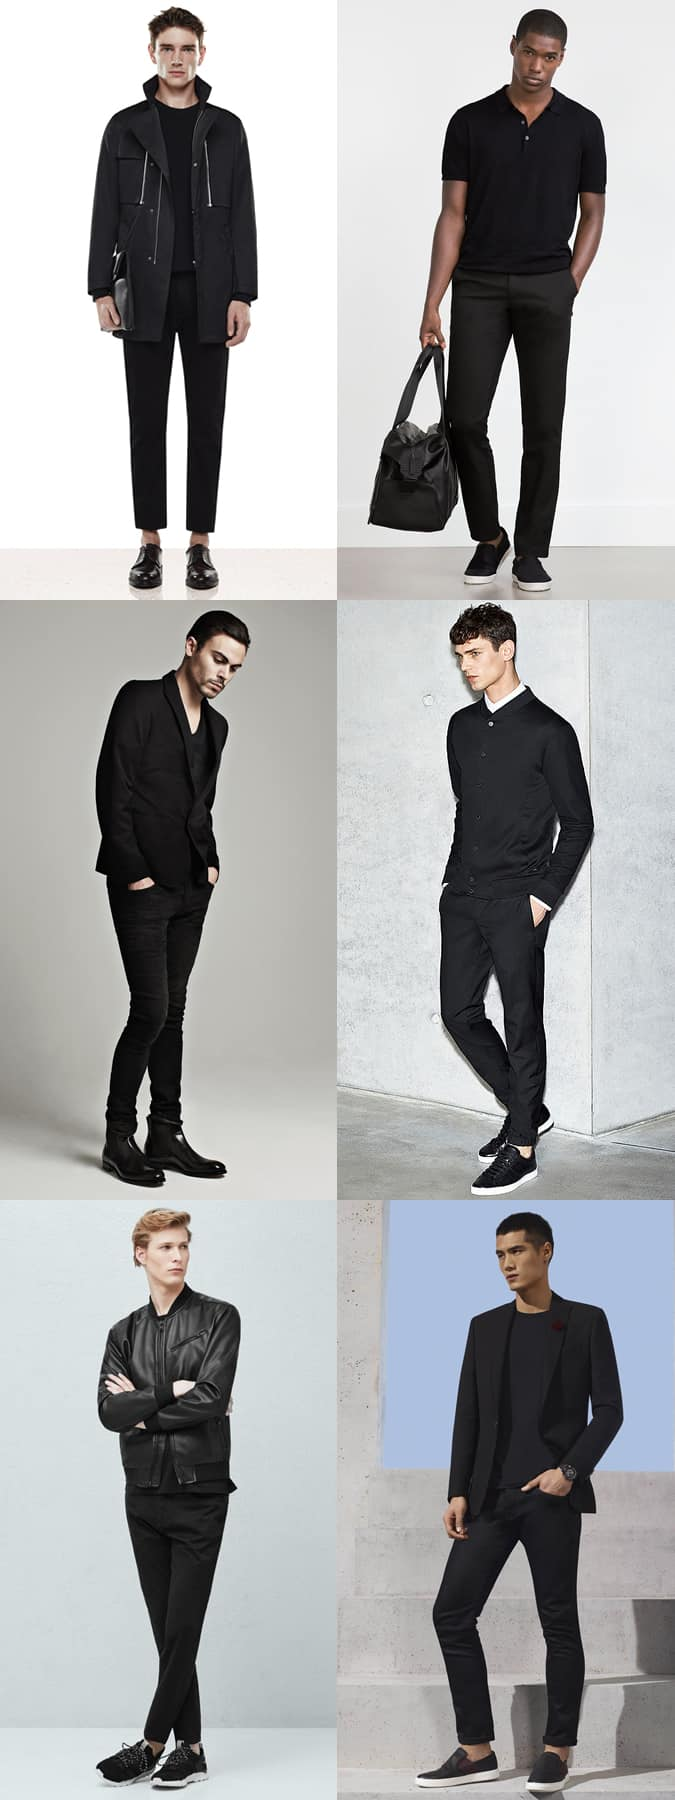 Men's All-Black Outfits Lookbook Inspiration